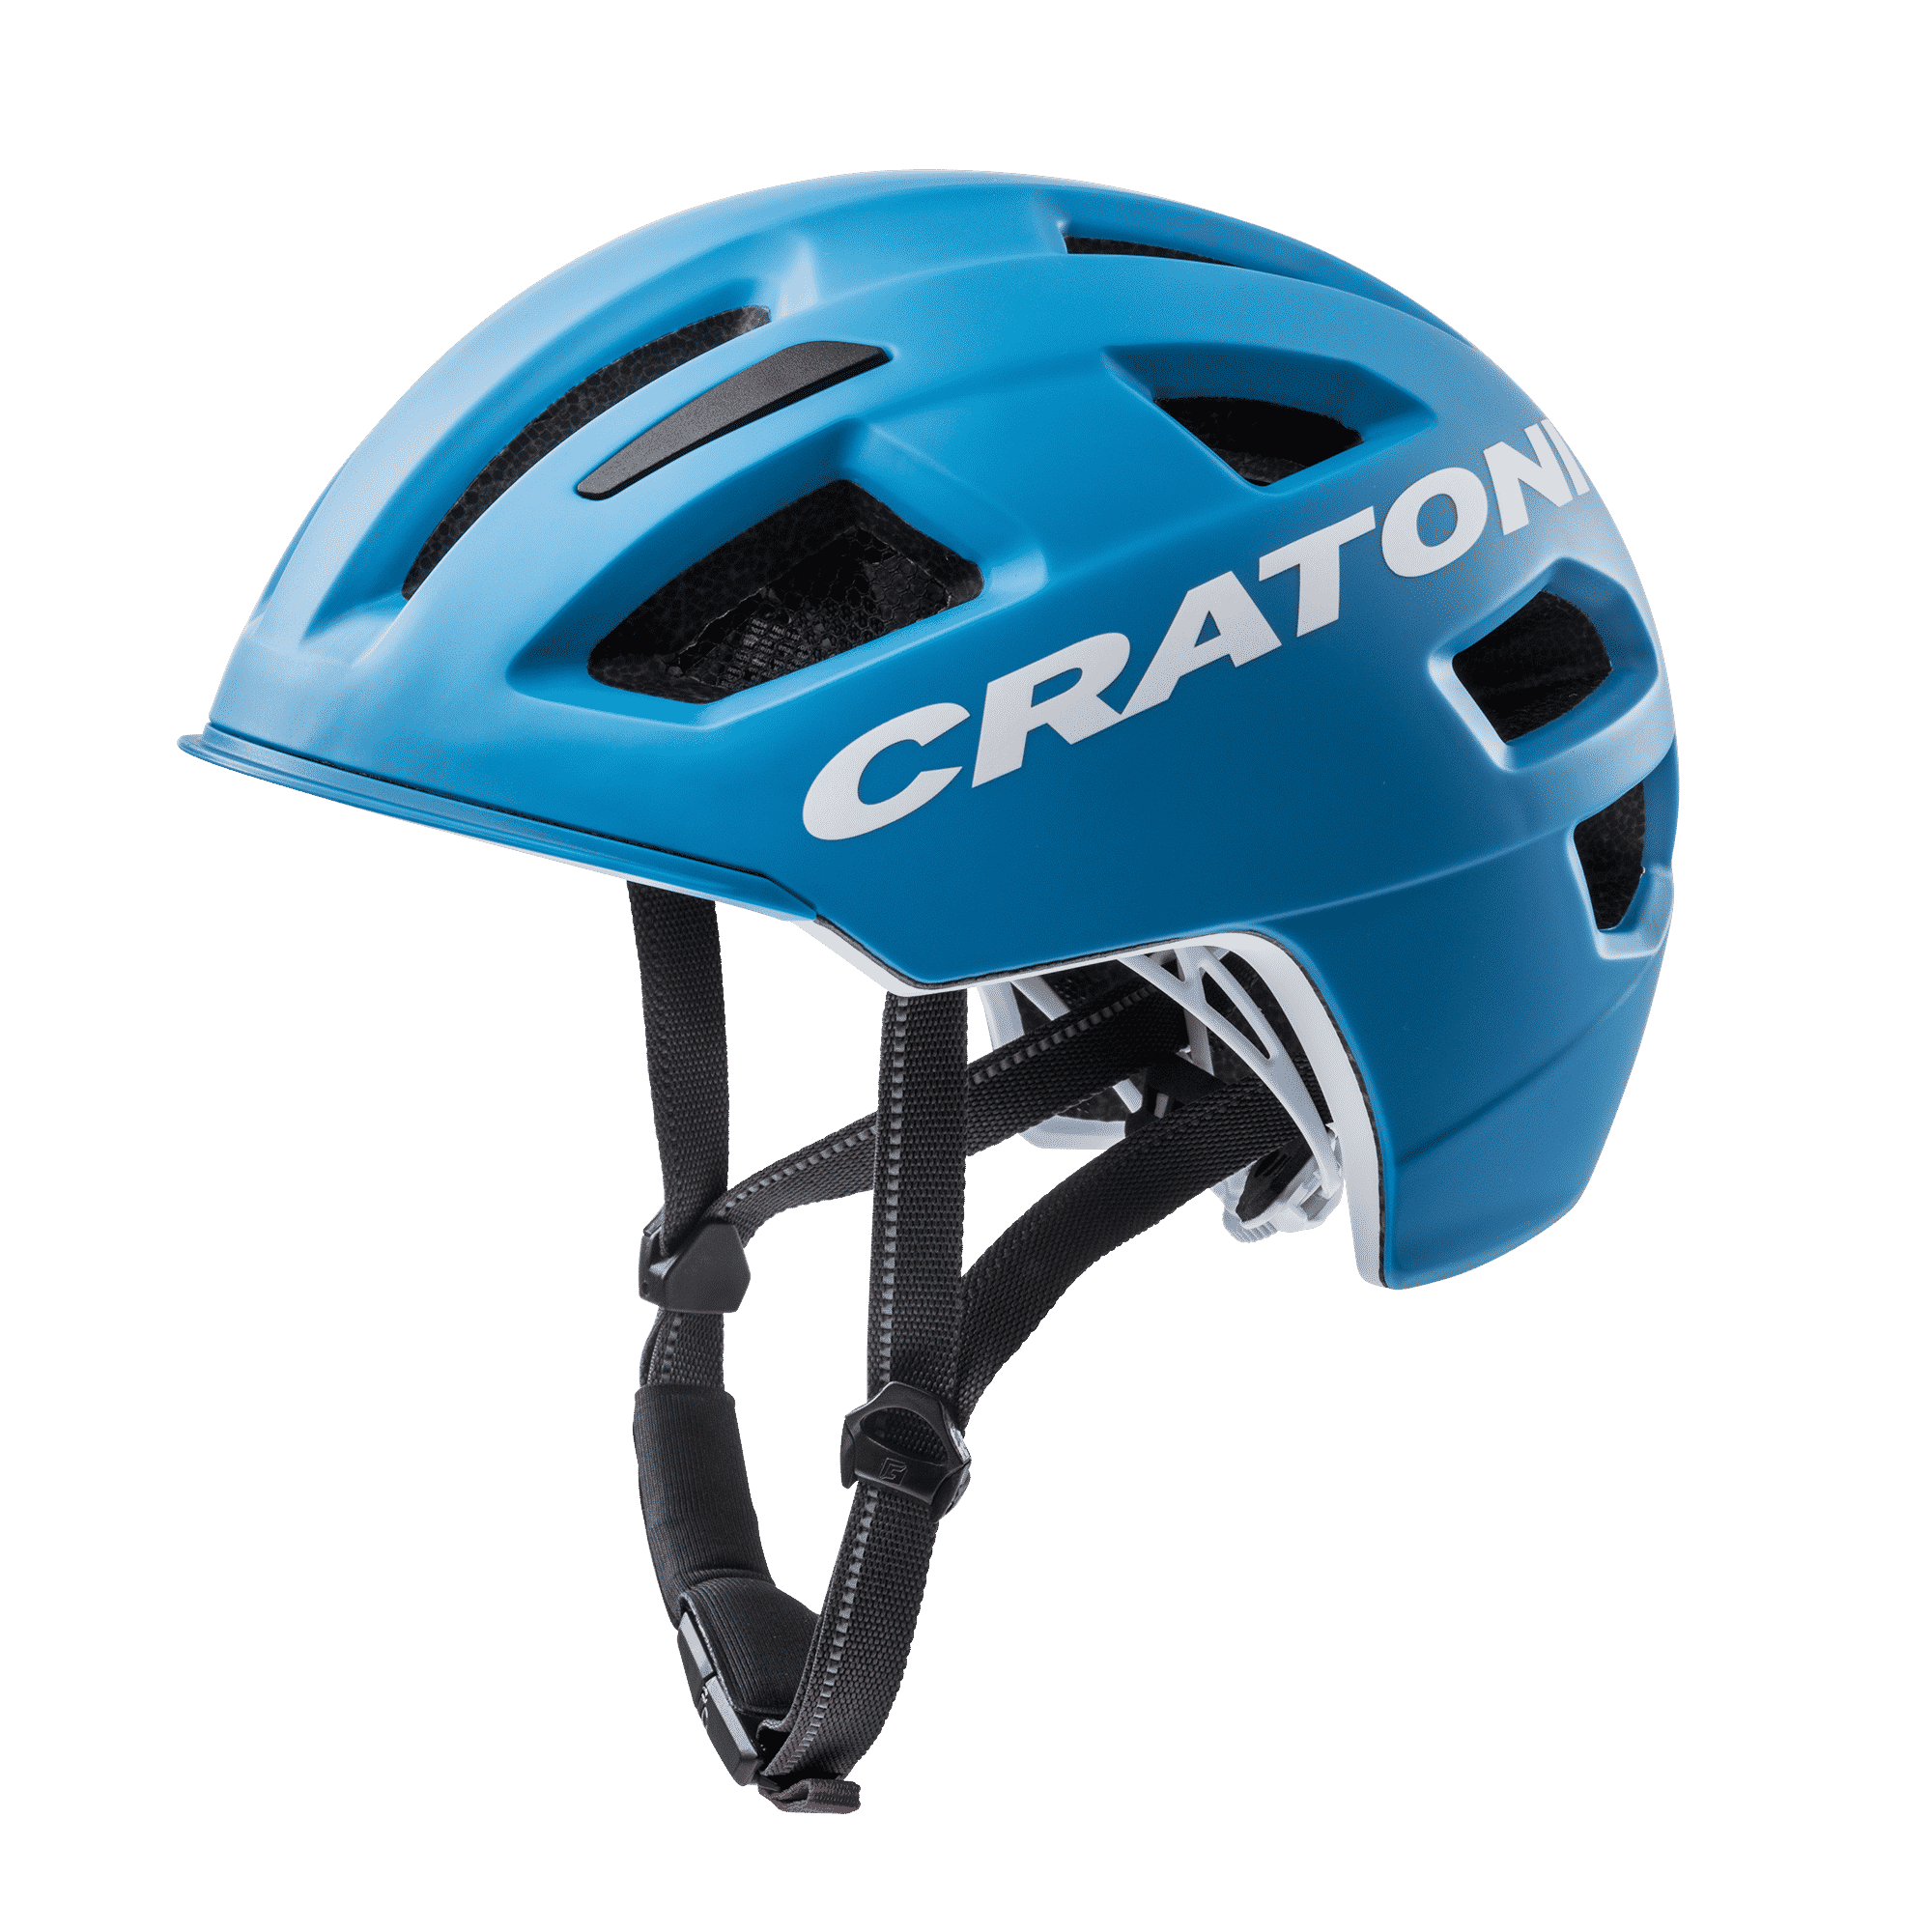 Casque Cratoni C-pure